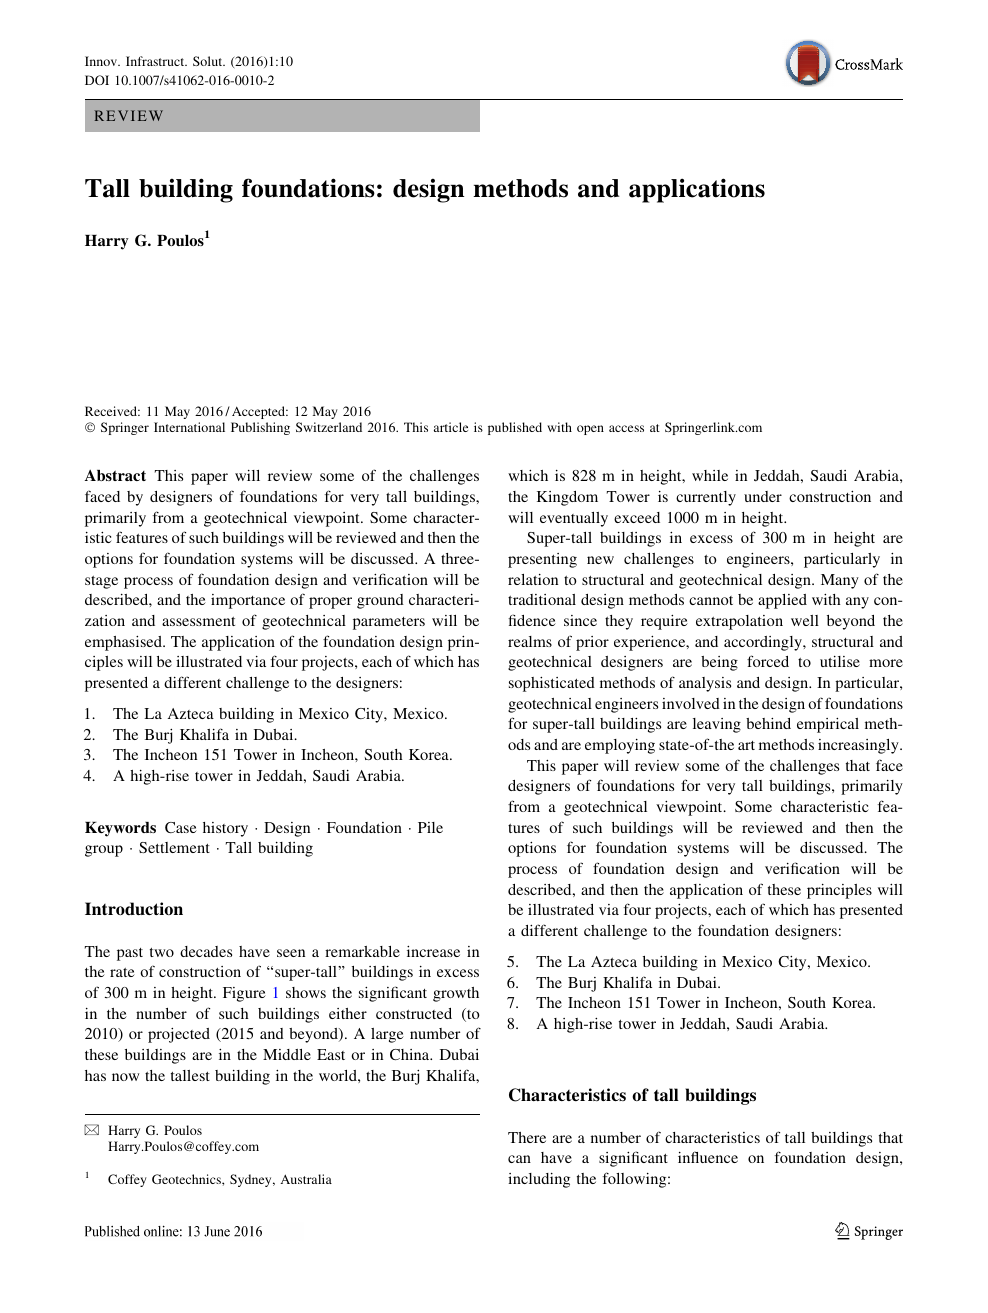 Tall building foundations: design methods and applications – topic